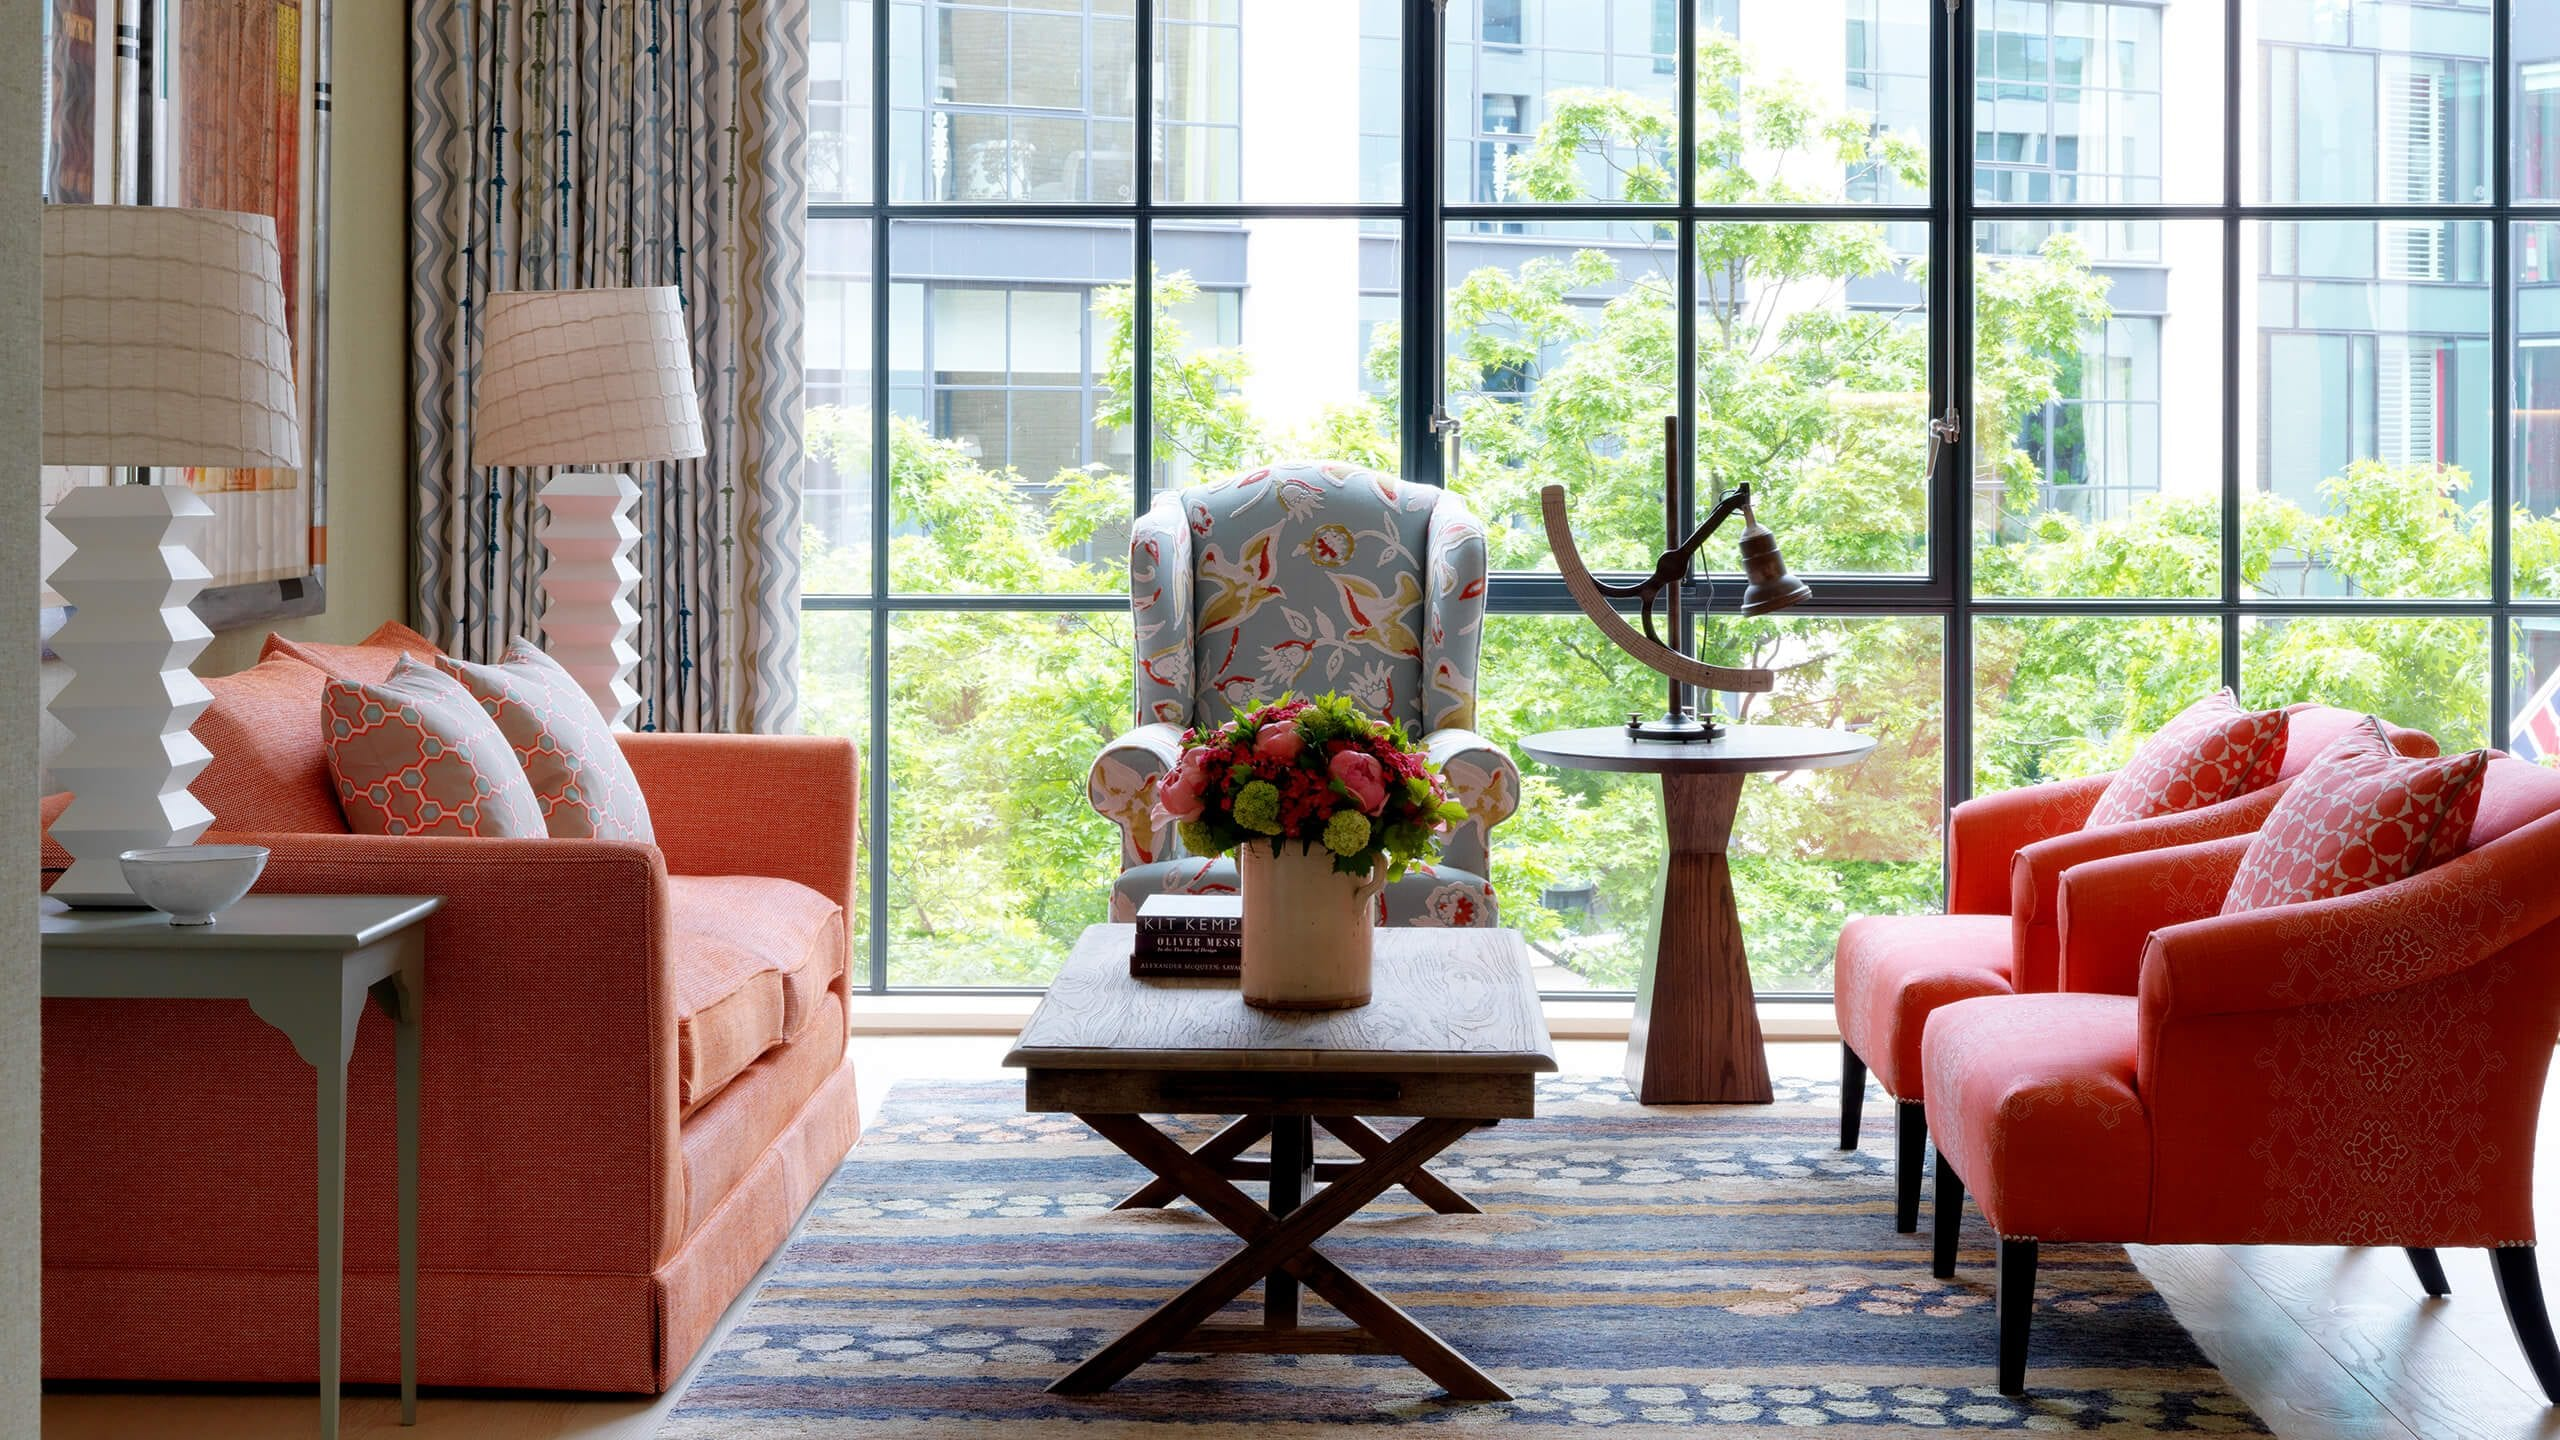 Crittall Style And Function For Hotel Projects Image